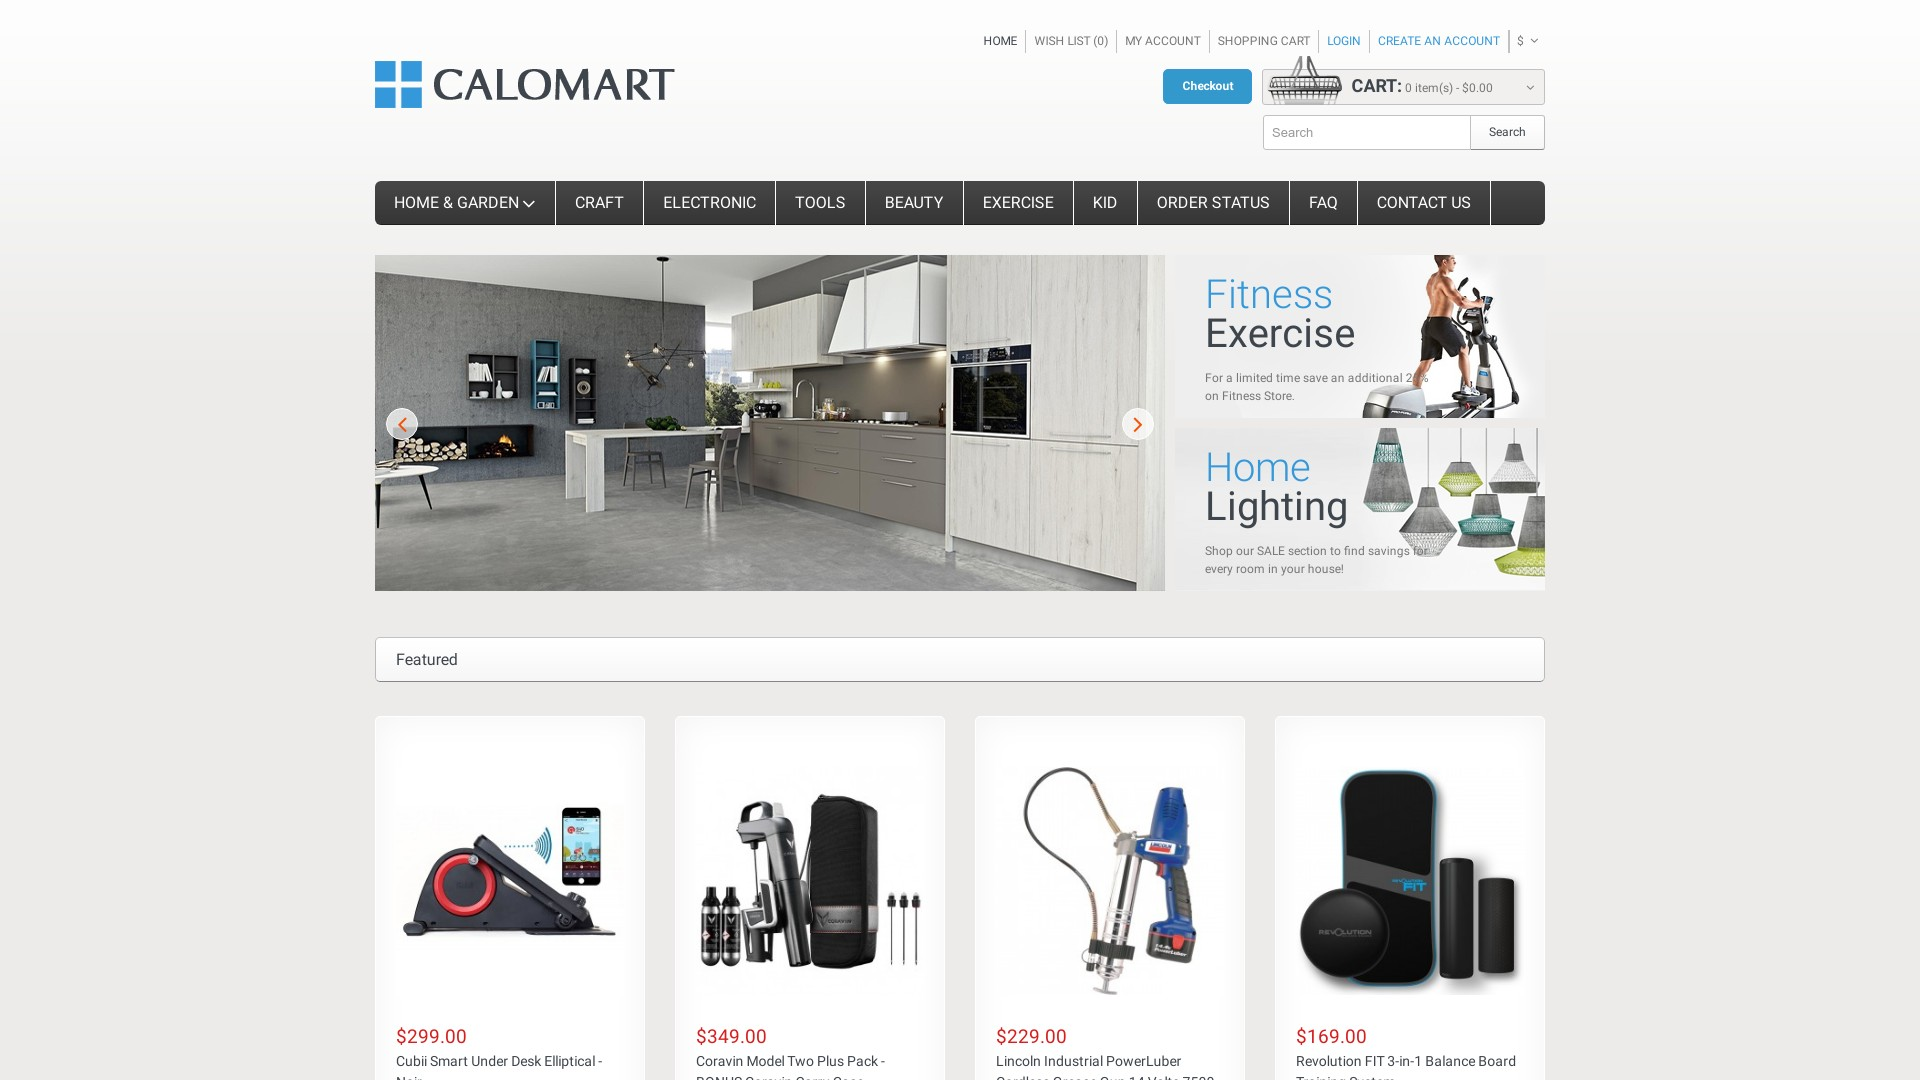 Is Calomart a Scam? See the Review of the Online Store